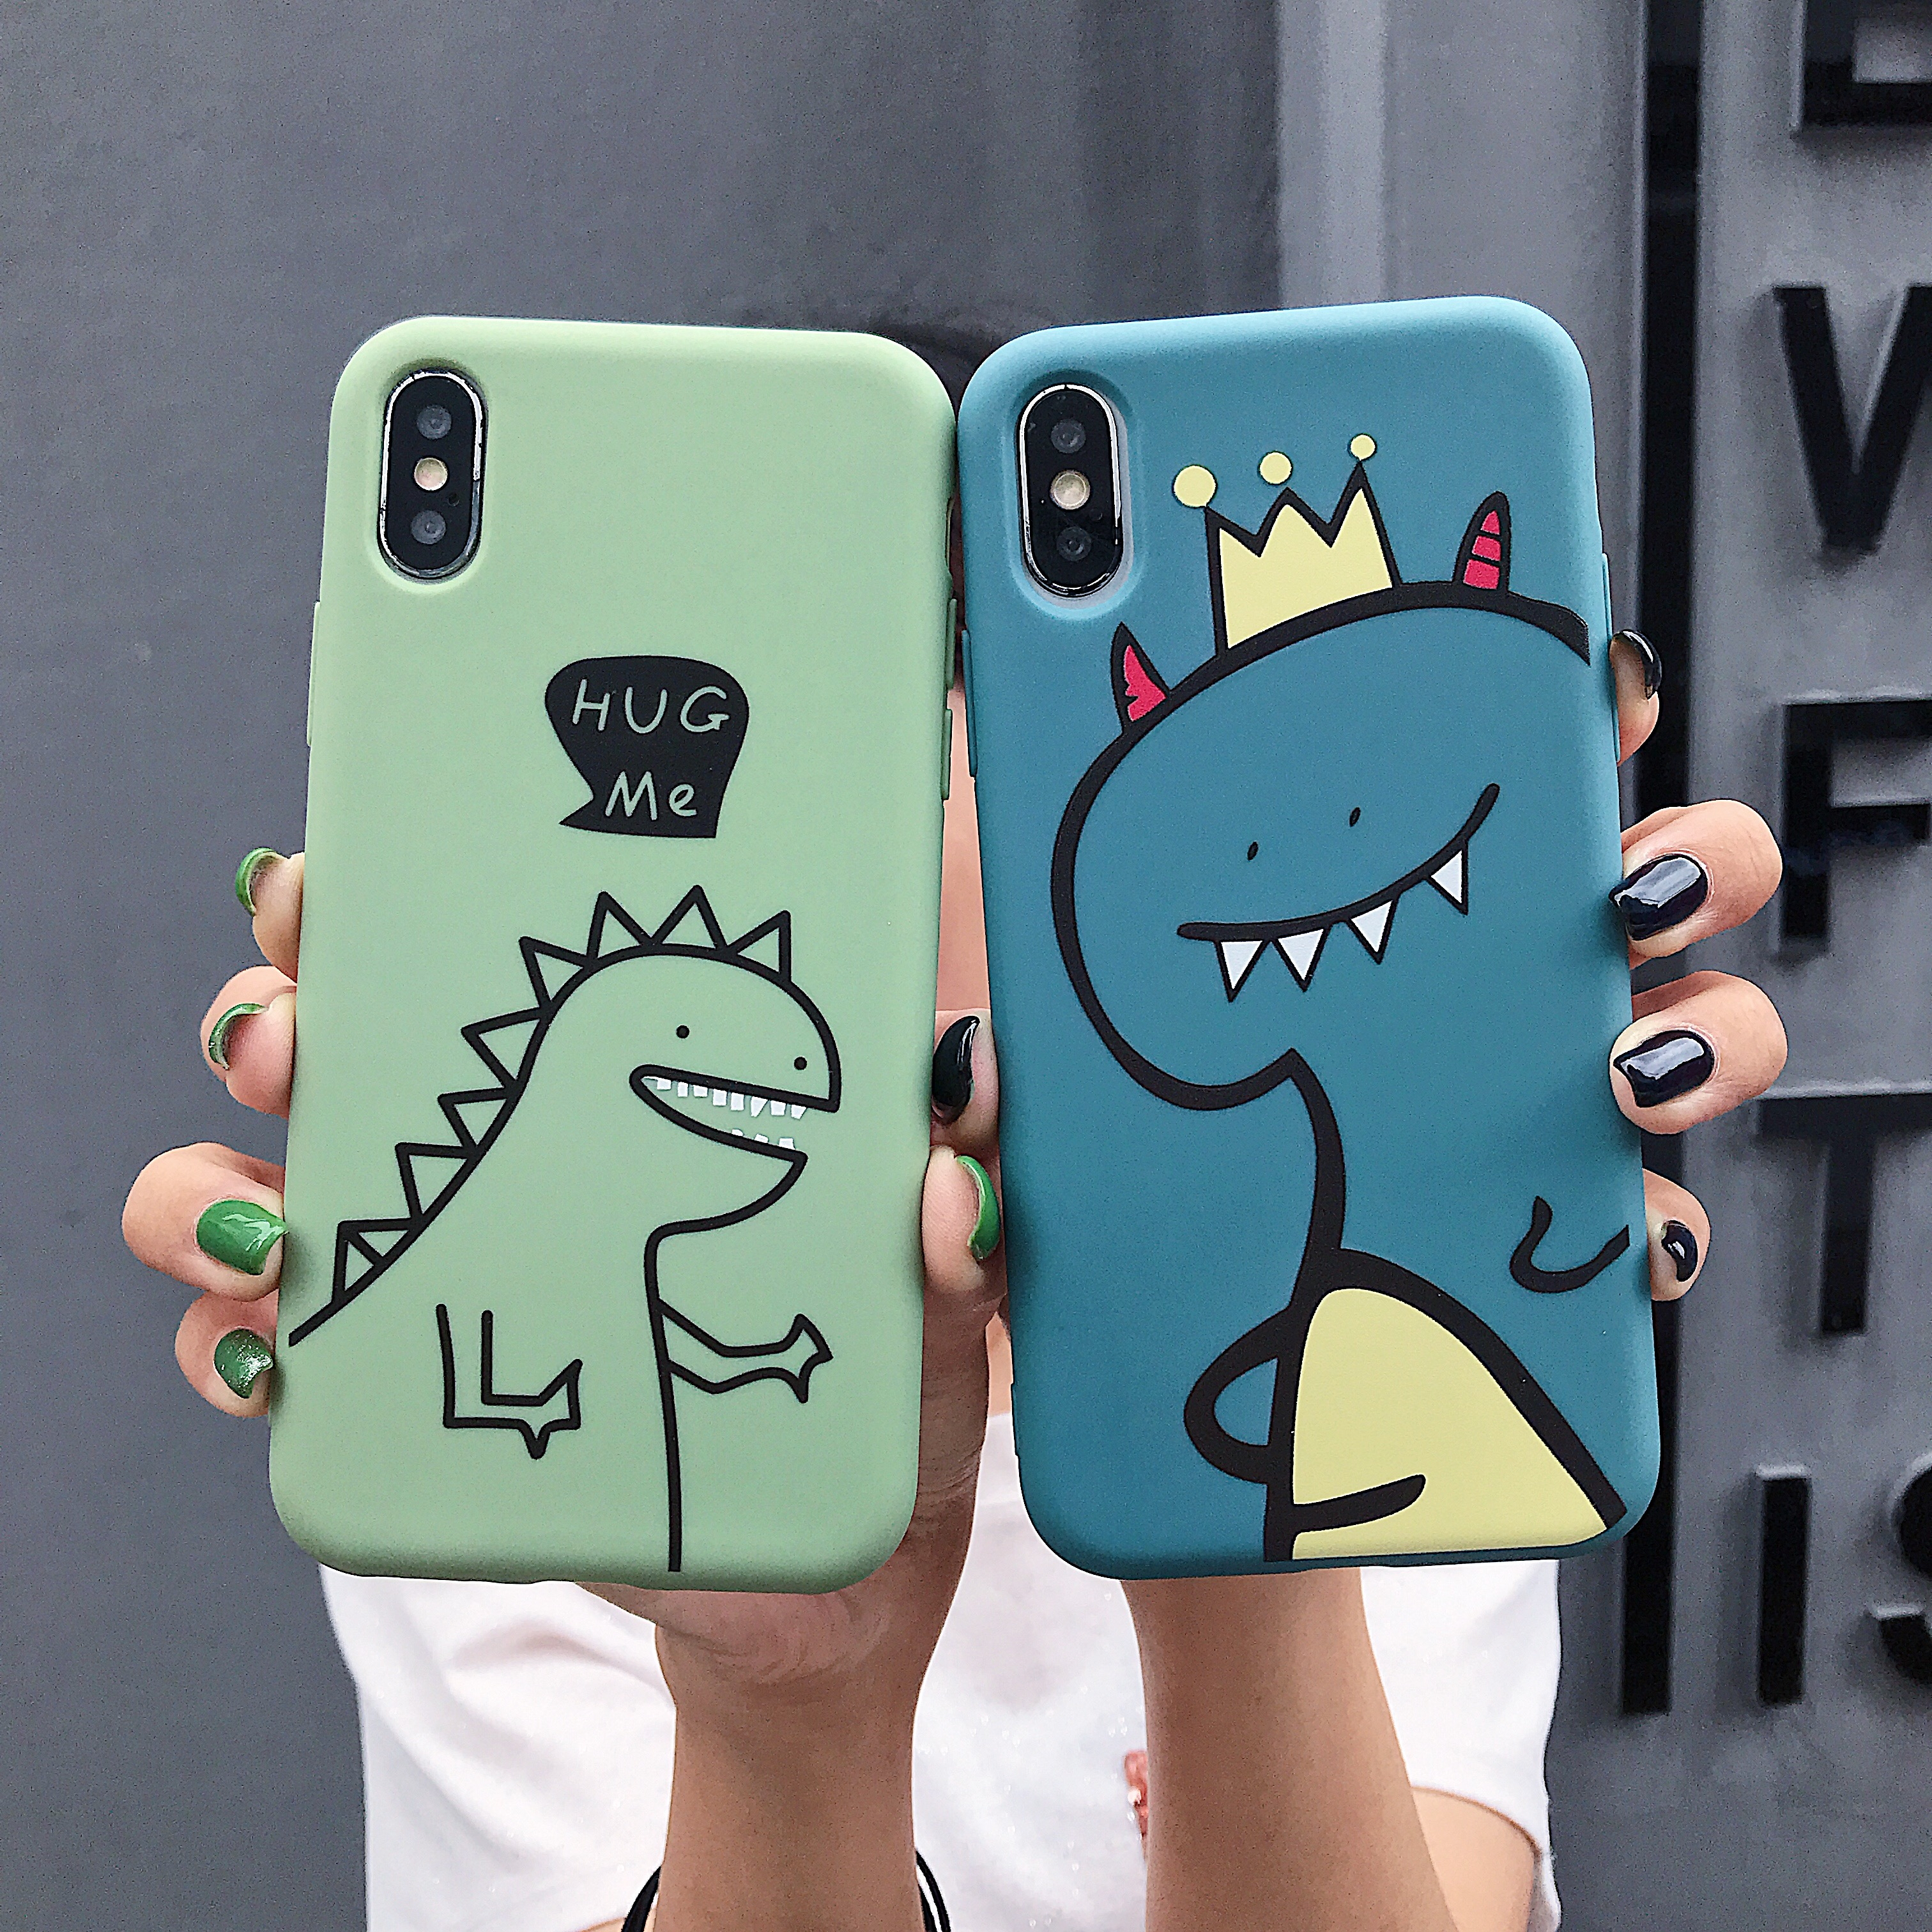 Fashion Cartoon Cute Dinosaur Cover Case For iPhone X XS Max XR 7 8 Plus 6 6S Plus 11 Pro Max Silicone soft shell Cover Case